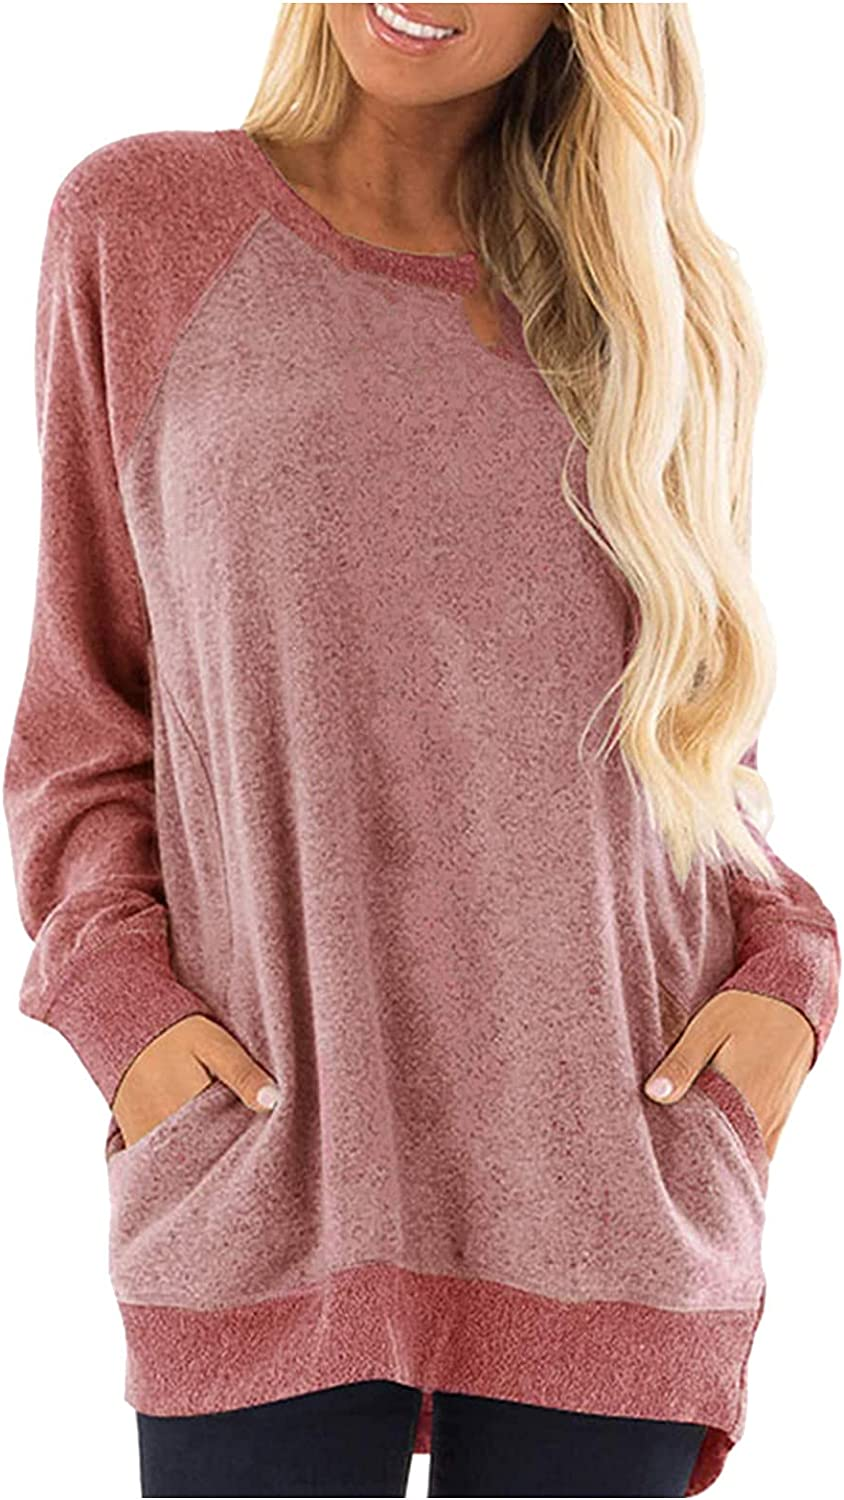 VonVonCo Pullover Sweaters for Women Round Neck Loose Fit Color Splice Pocket Long Sleeve Sweatshirt Casual T-Shirt